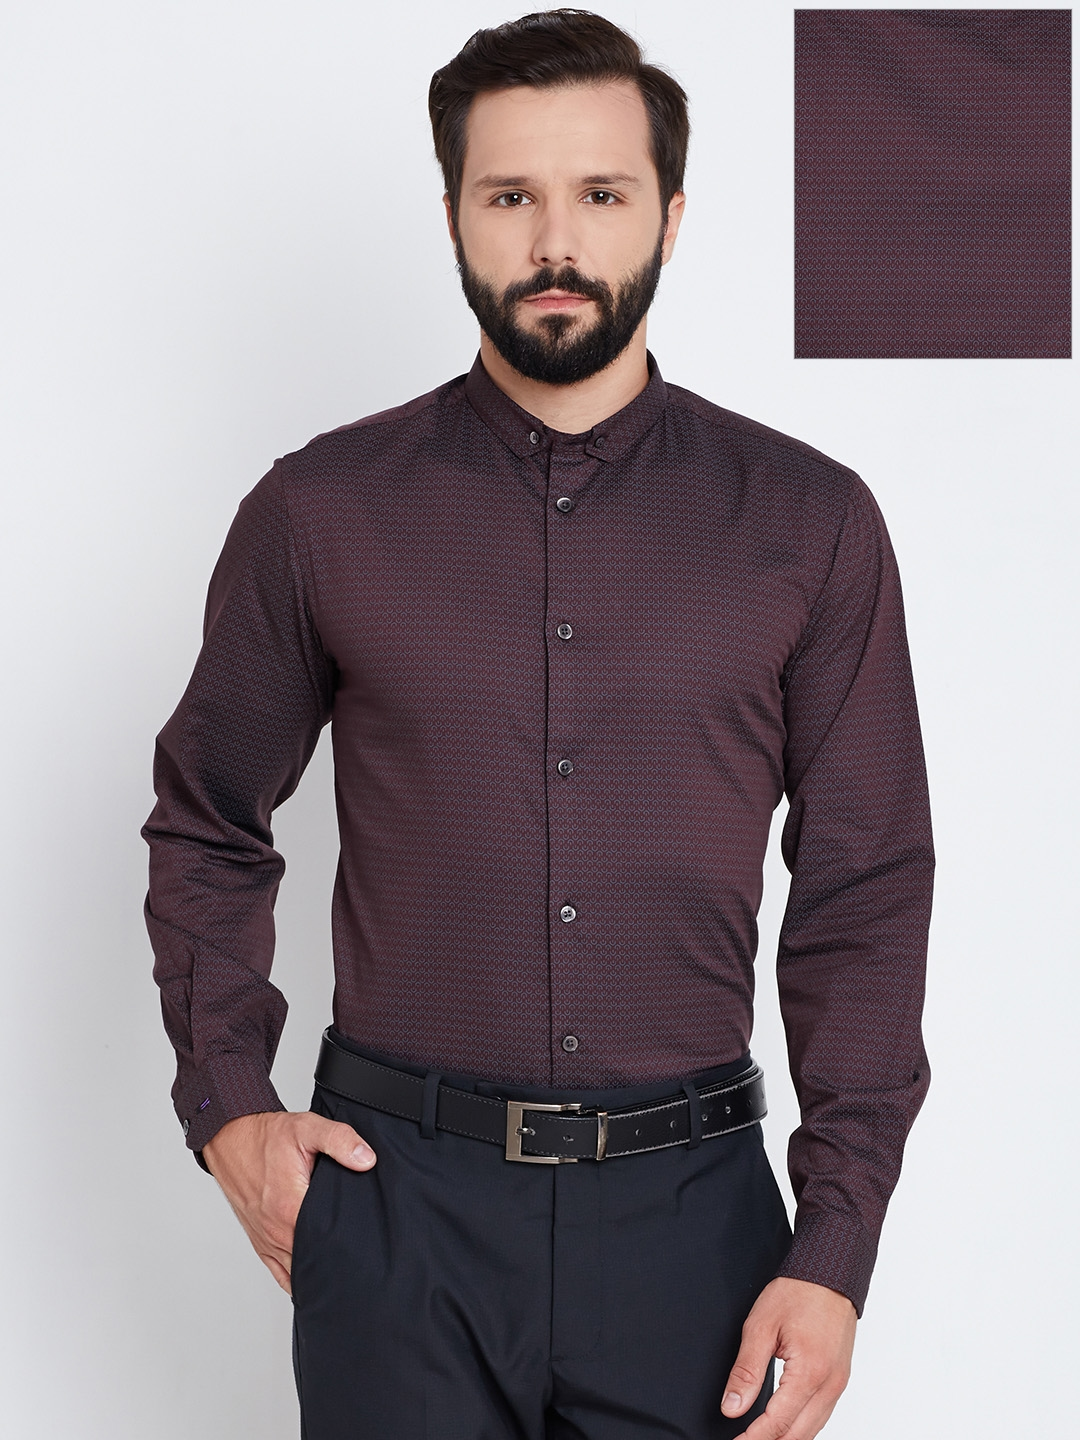 7d6680fe27f Buy Arrow New York Men Burgundy Slim Fit Printed Formal Shirt ...